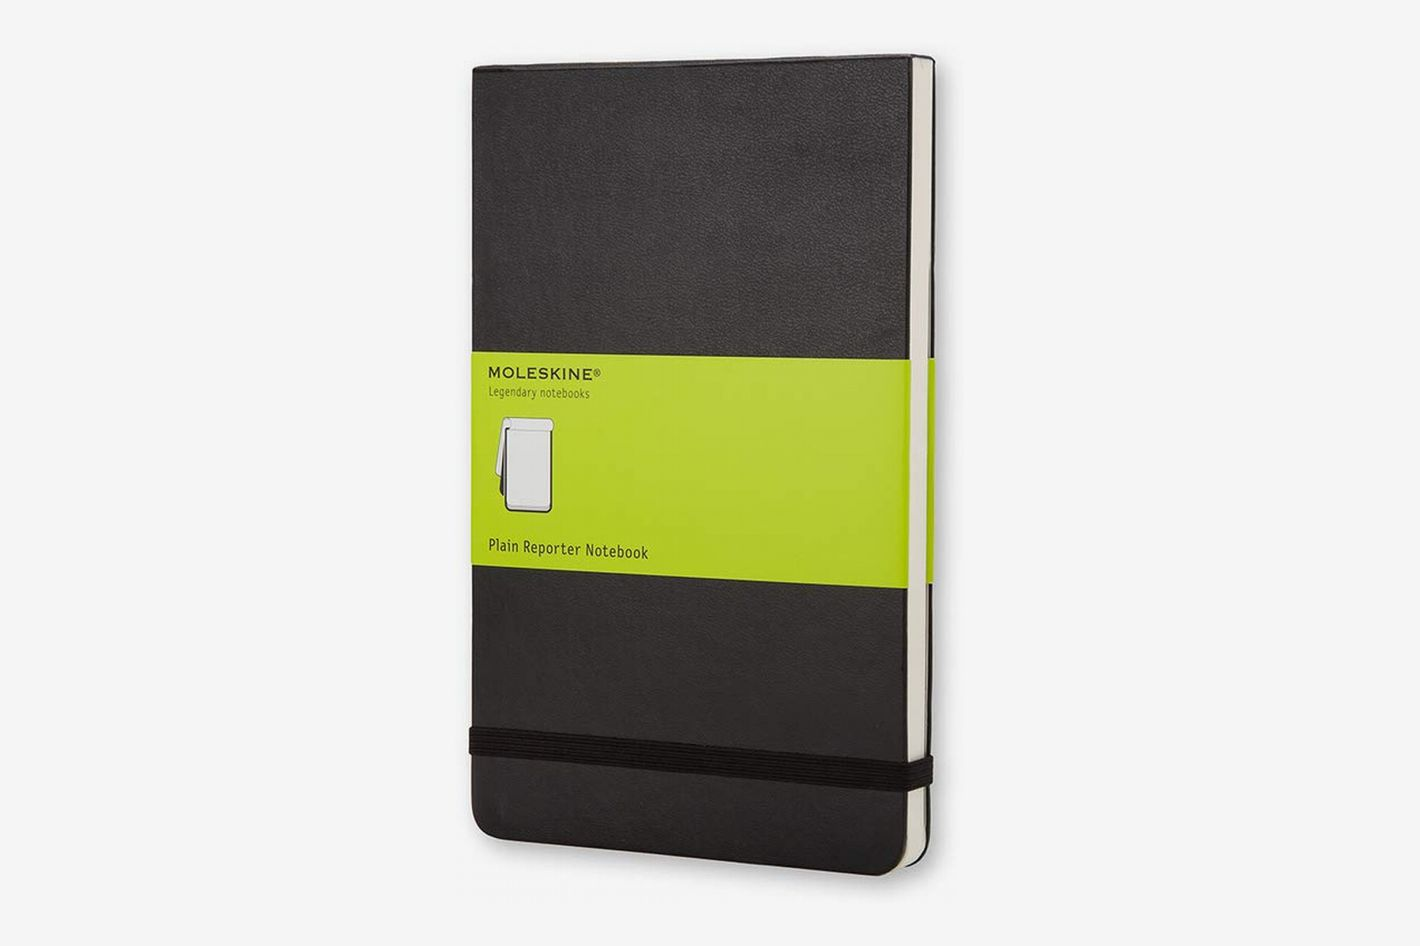 Moleskine Classic Hard Cover Notebook Large Reporter Style